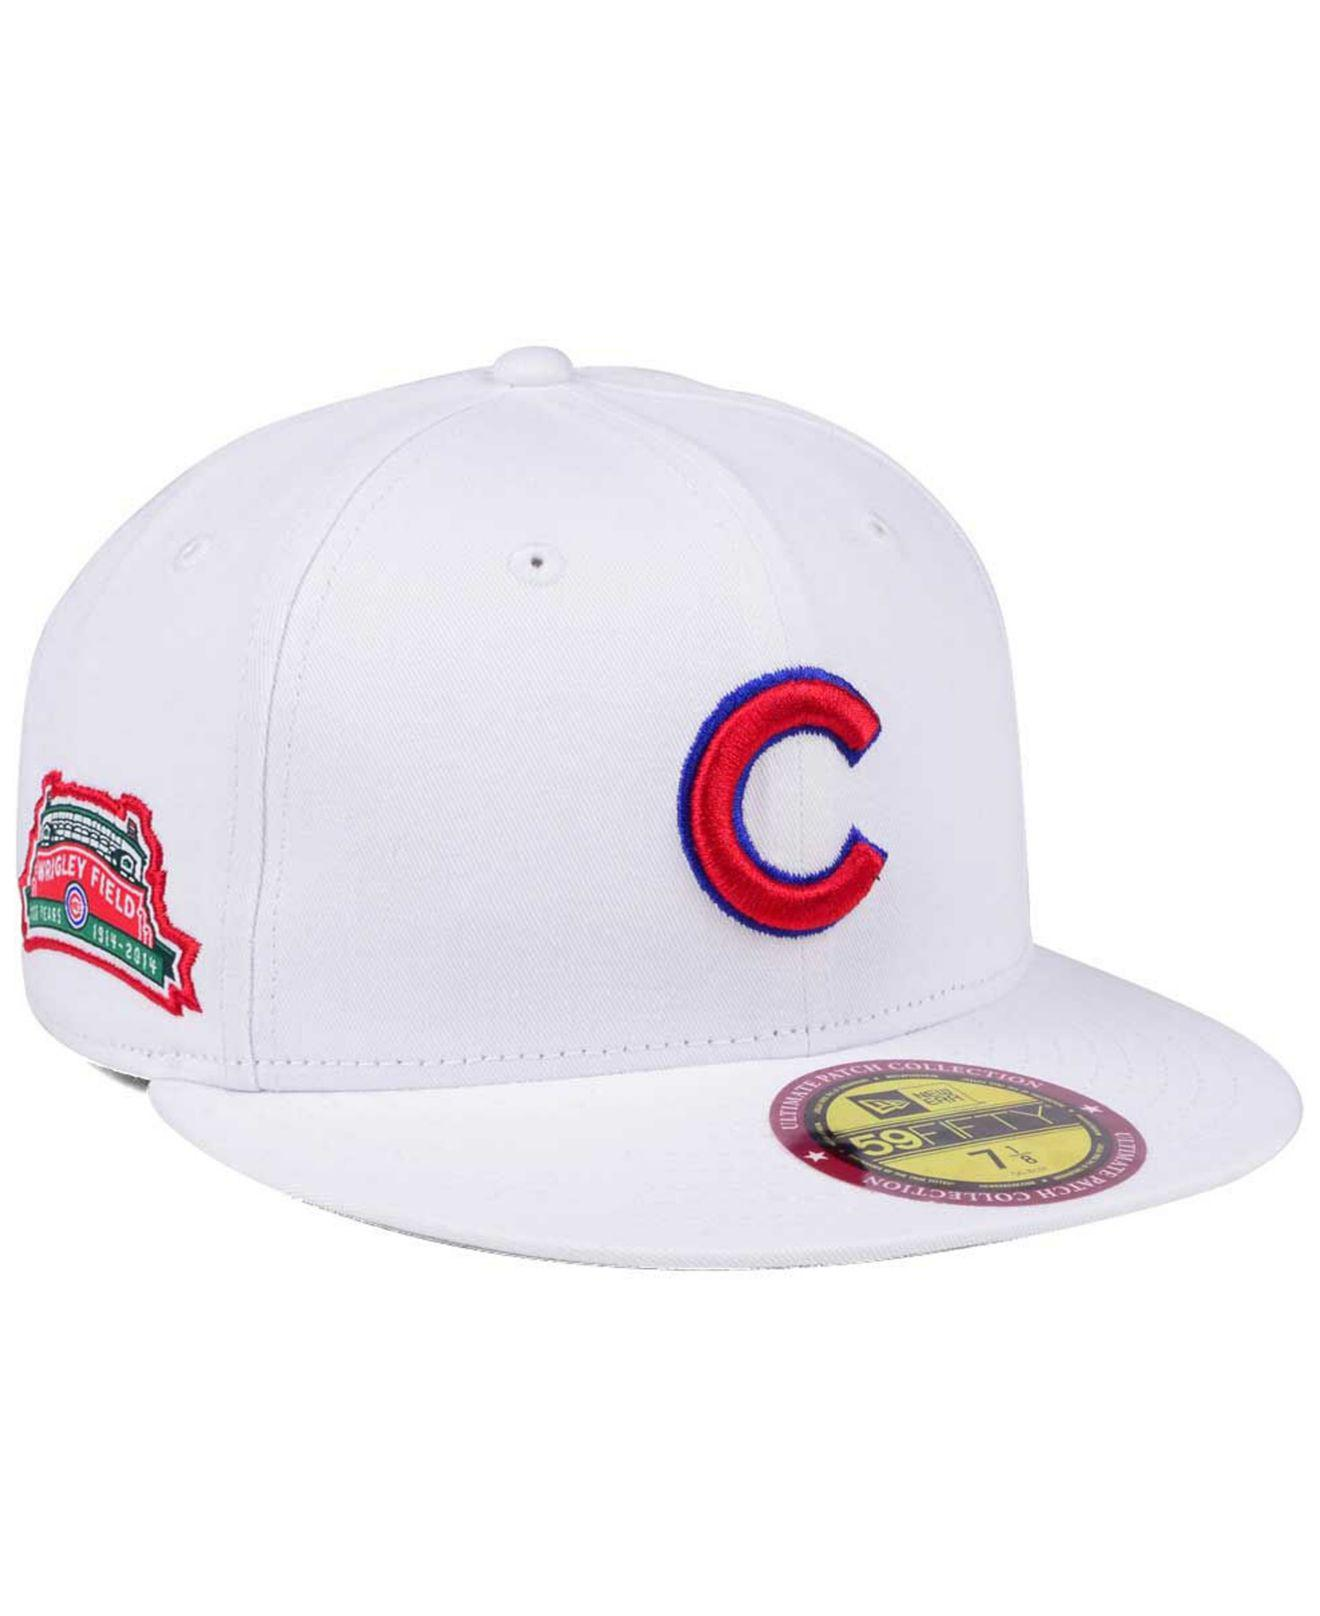 low priced 2498c 23006 ... Ultimate Patch Collection Stadium 59fifty Cap for Men - Lyst. View  fullscreen